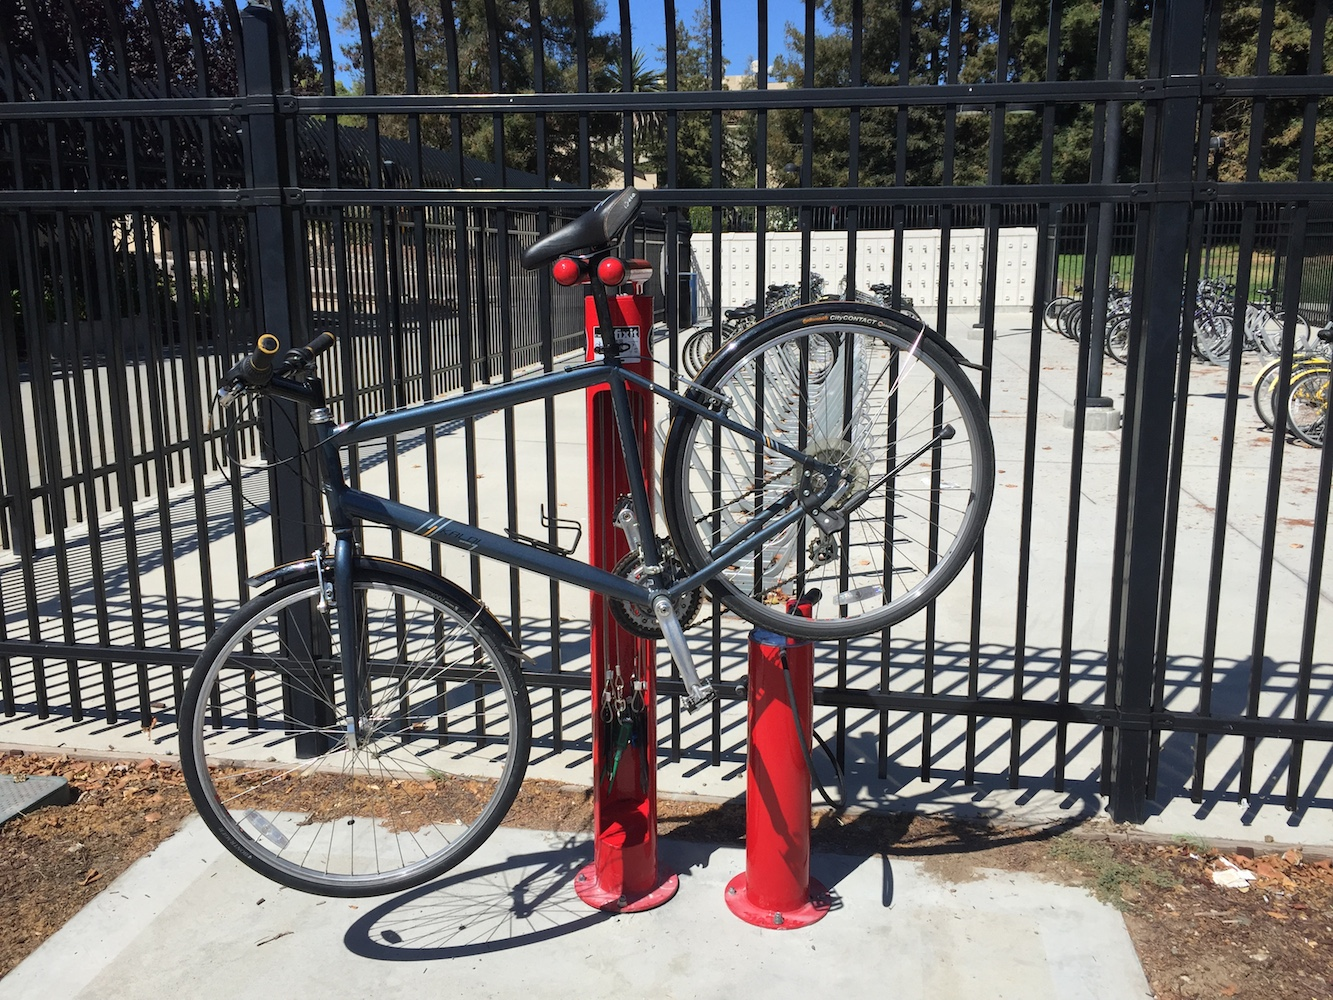 Bikes can be suspended by the station so repairs can be made. Photo courtesy of Larry Dean.